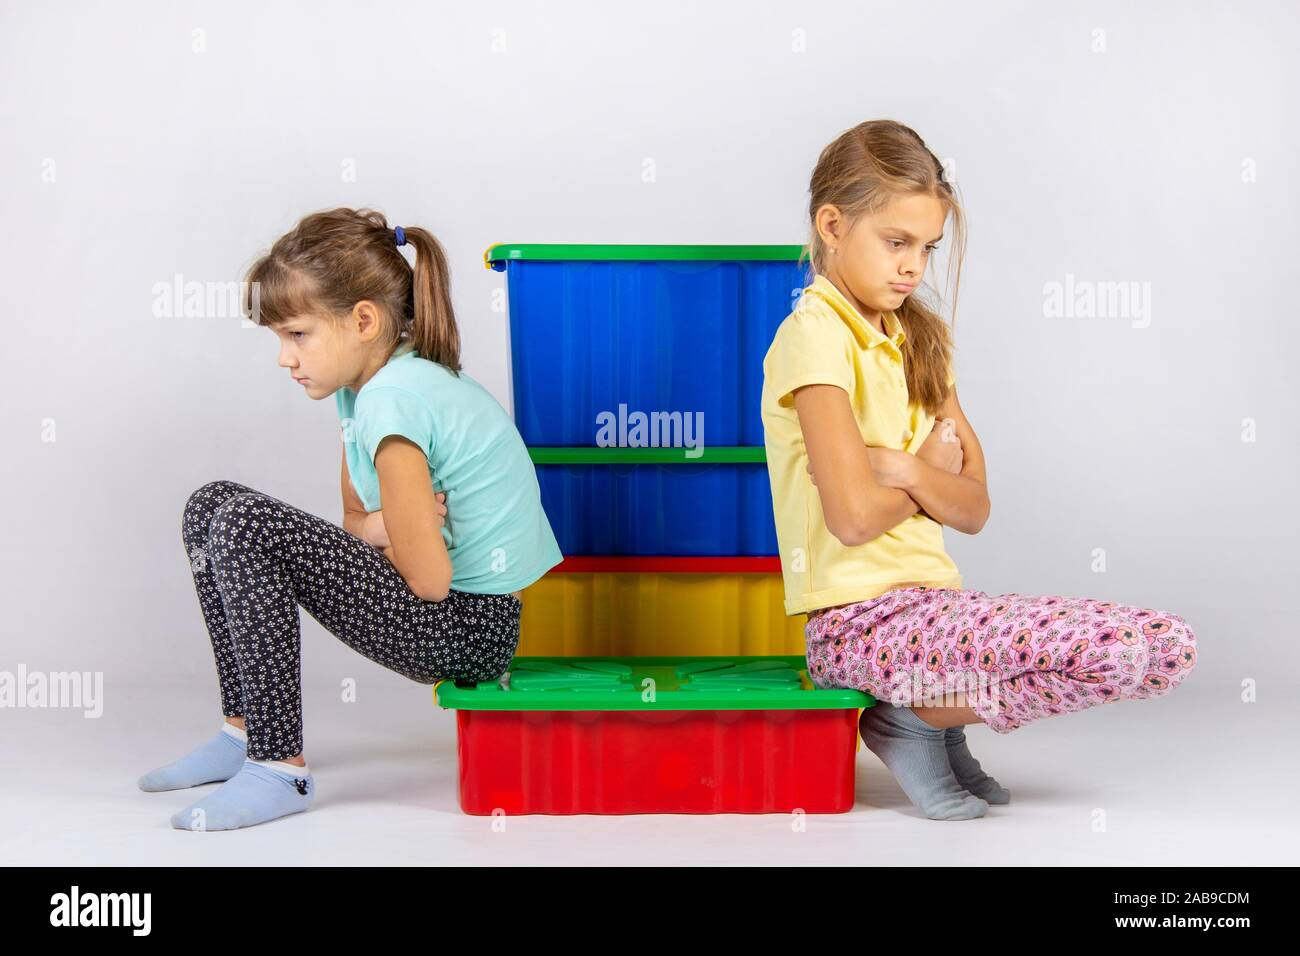 Two girls quarreled, sit on a box and turned away from each other. Stock Photo